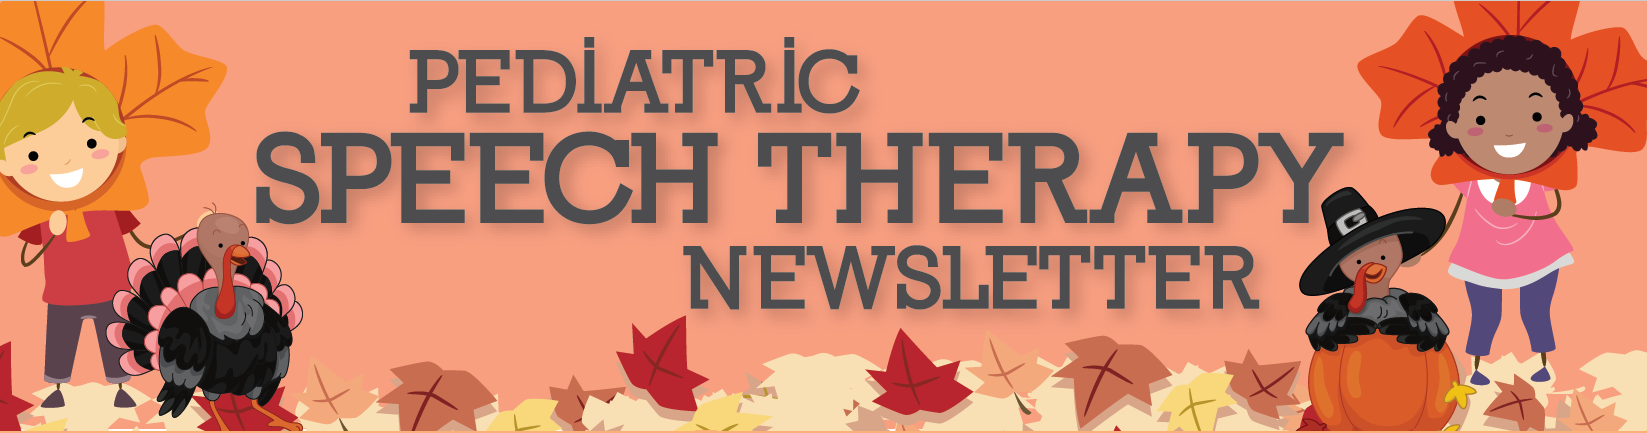 Introducing the Pediatric Speech Therapy Newsletter!